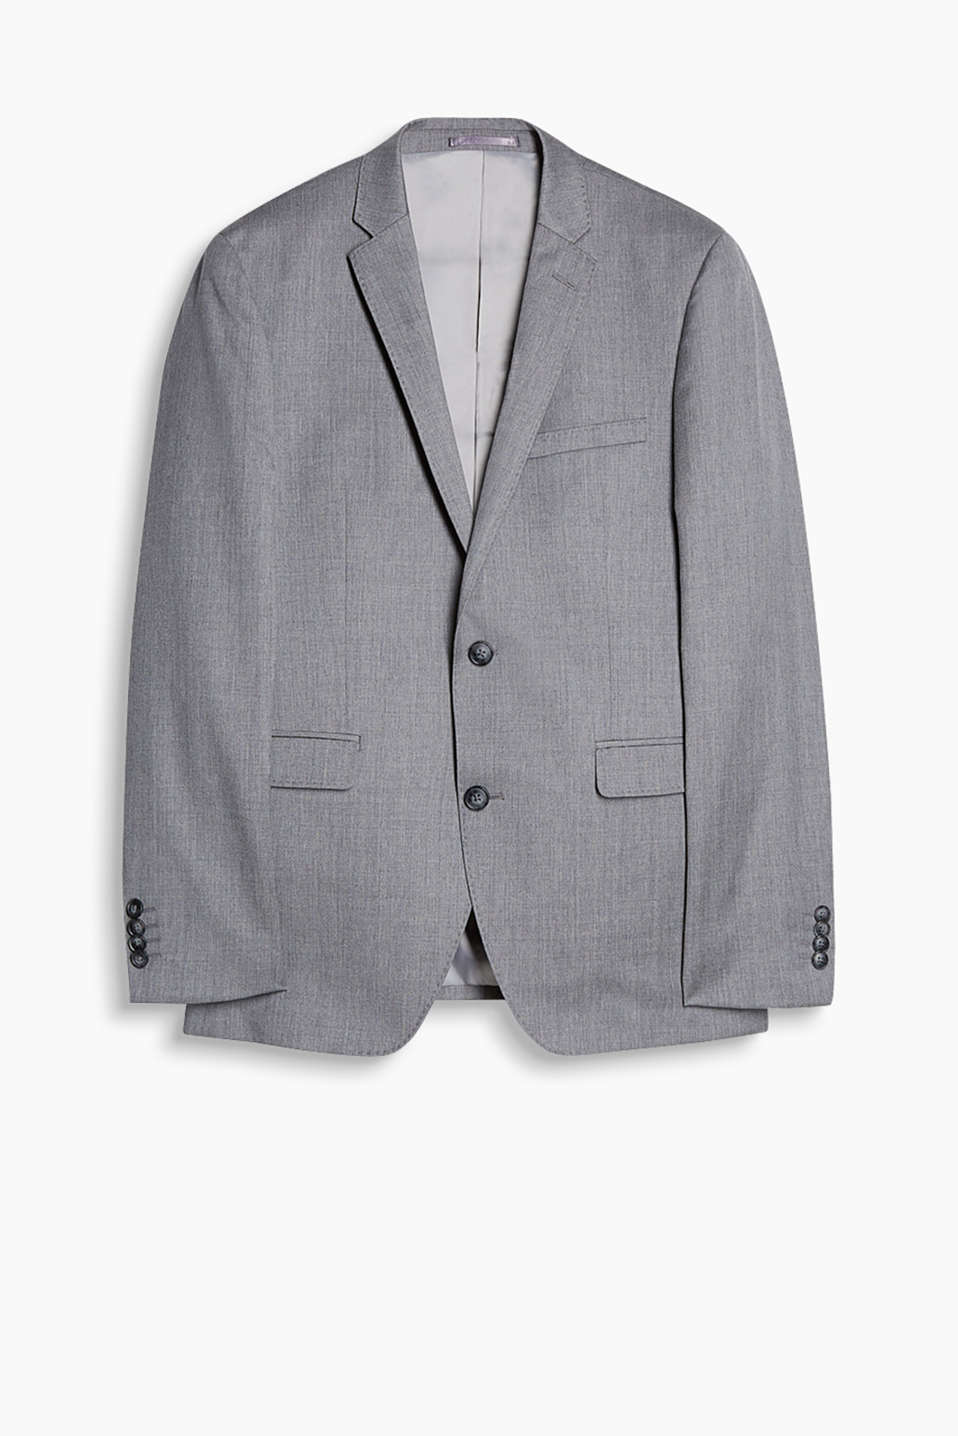 In a summery style: premium jacket with an integrated pocket square